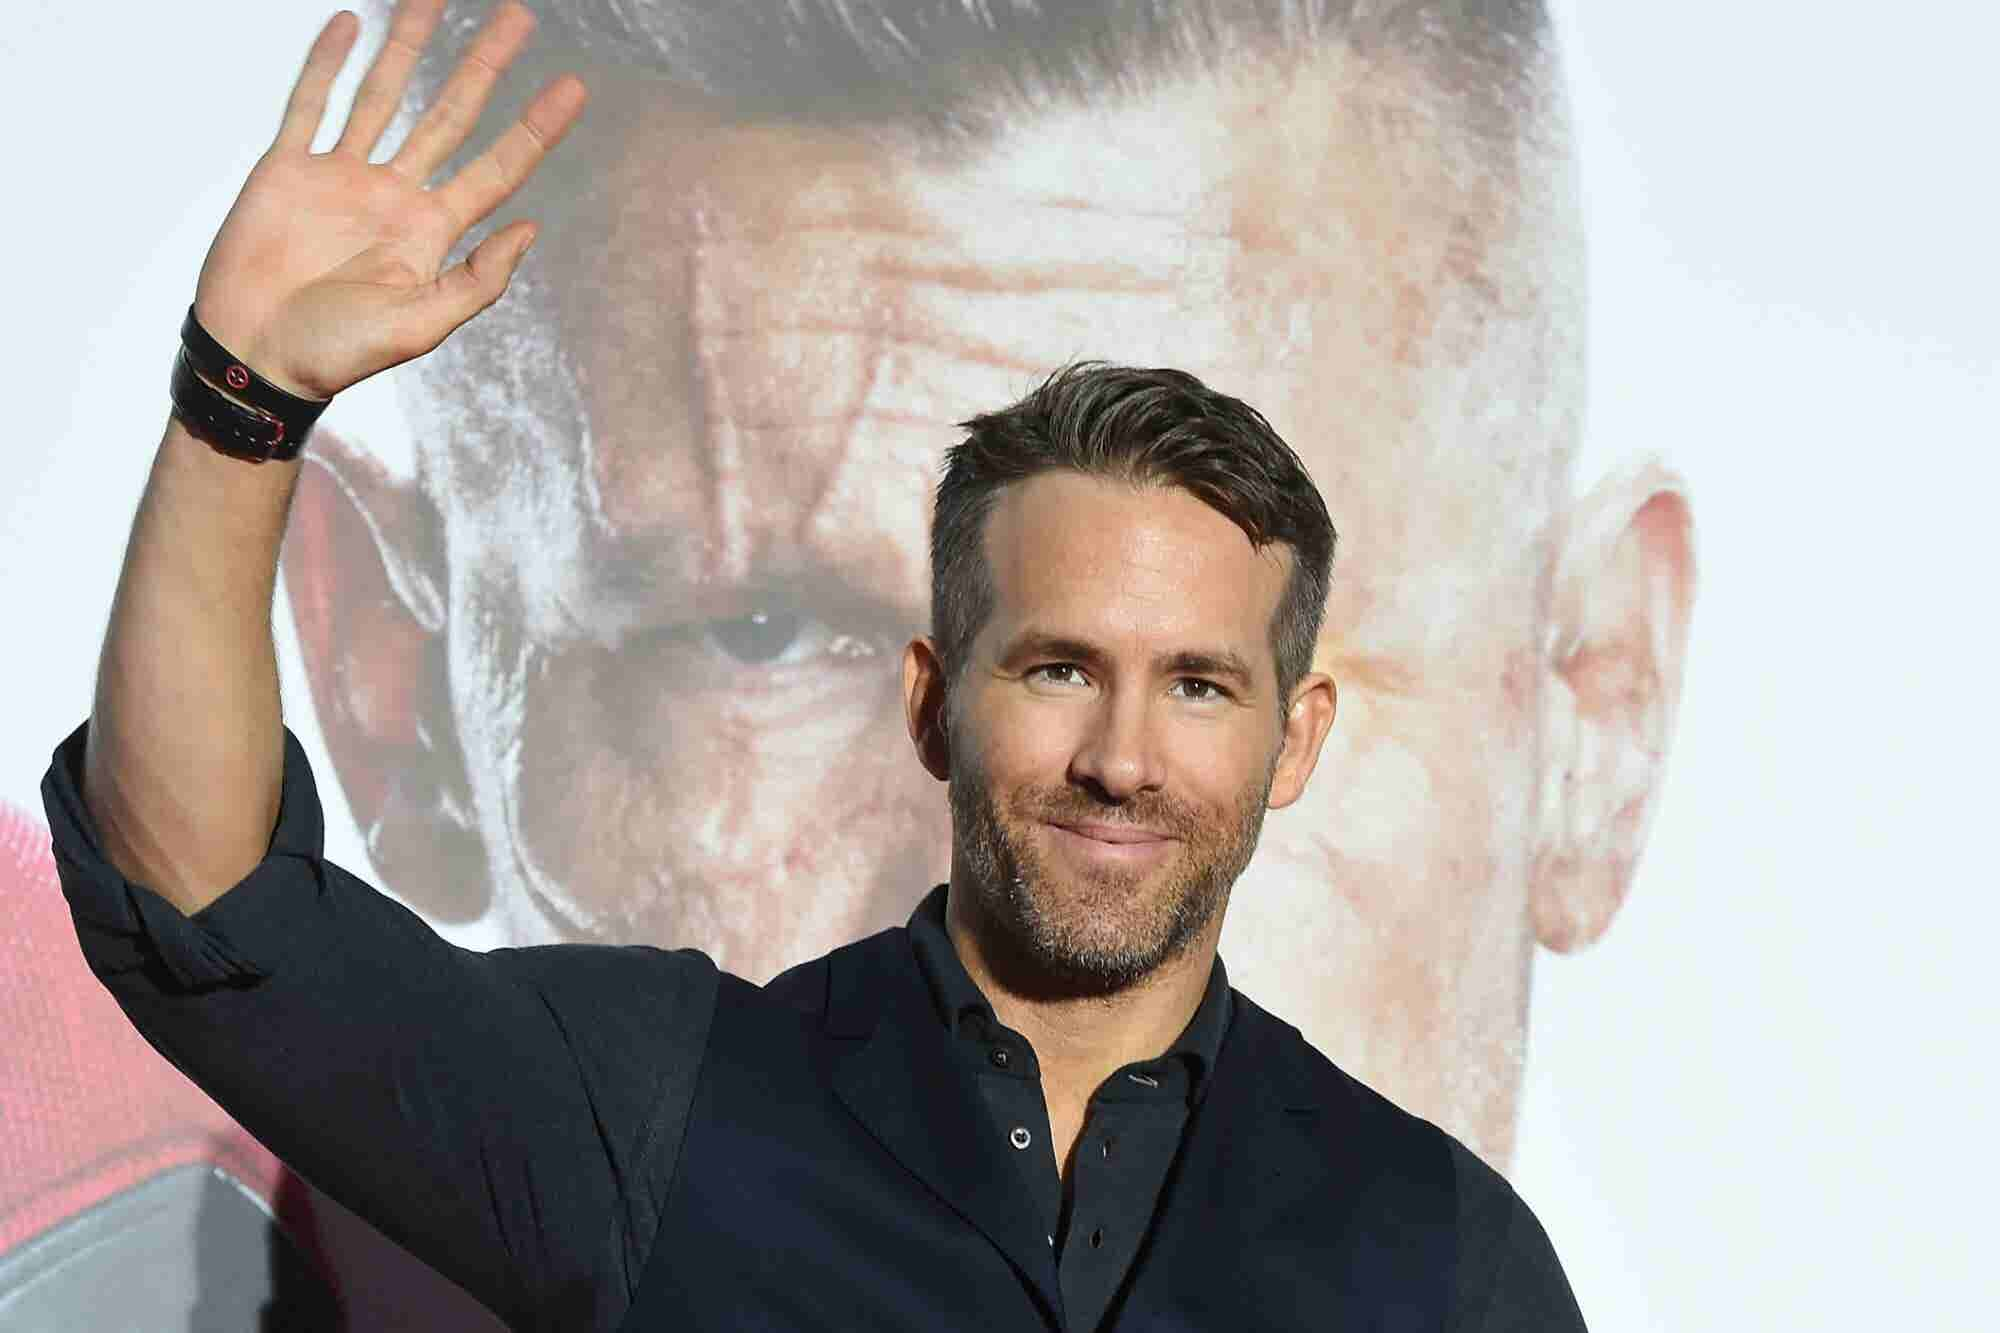 This Week in Weed: NYC Stops Prosecuting, and Ryan Reynolds Is 'Stoned Alone'